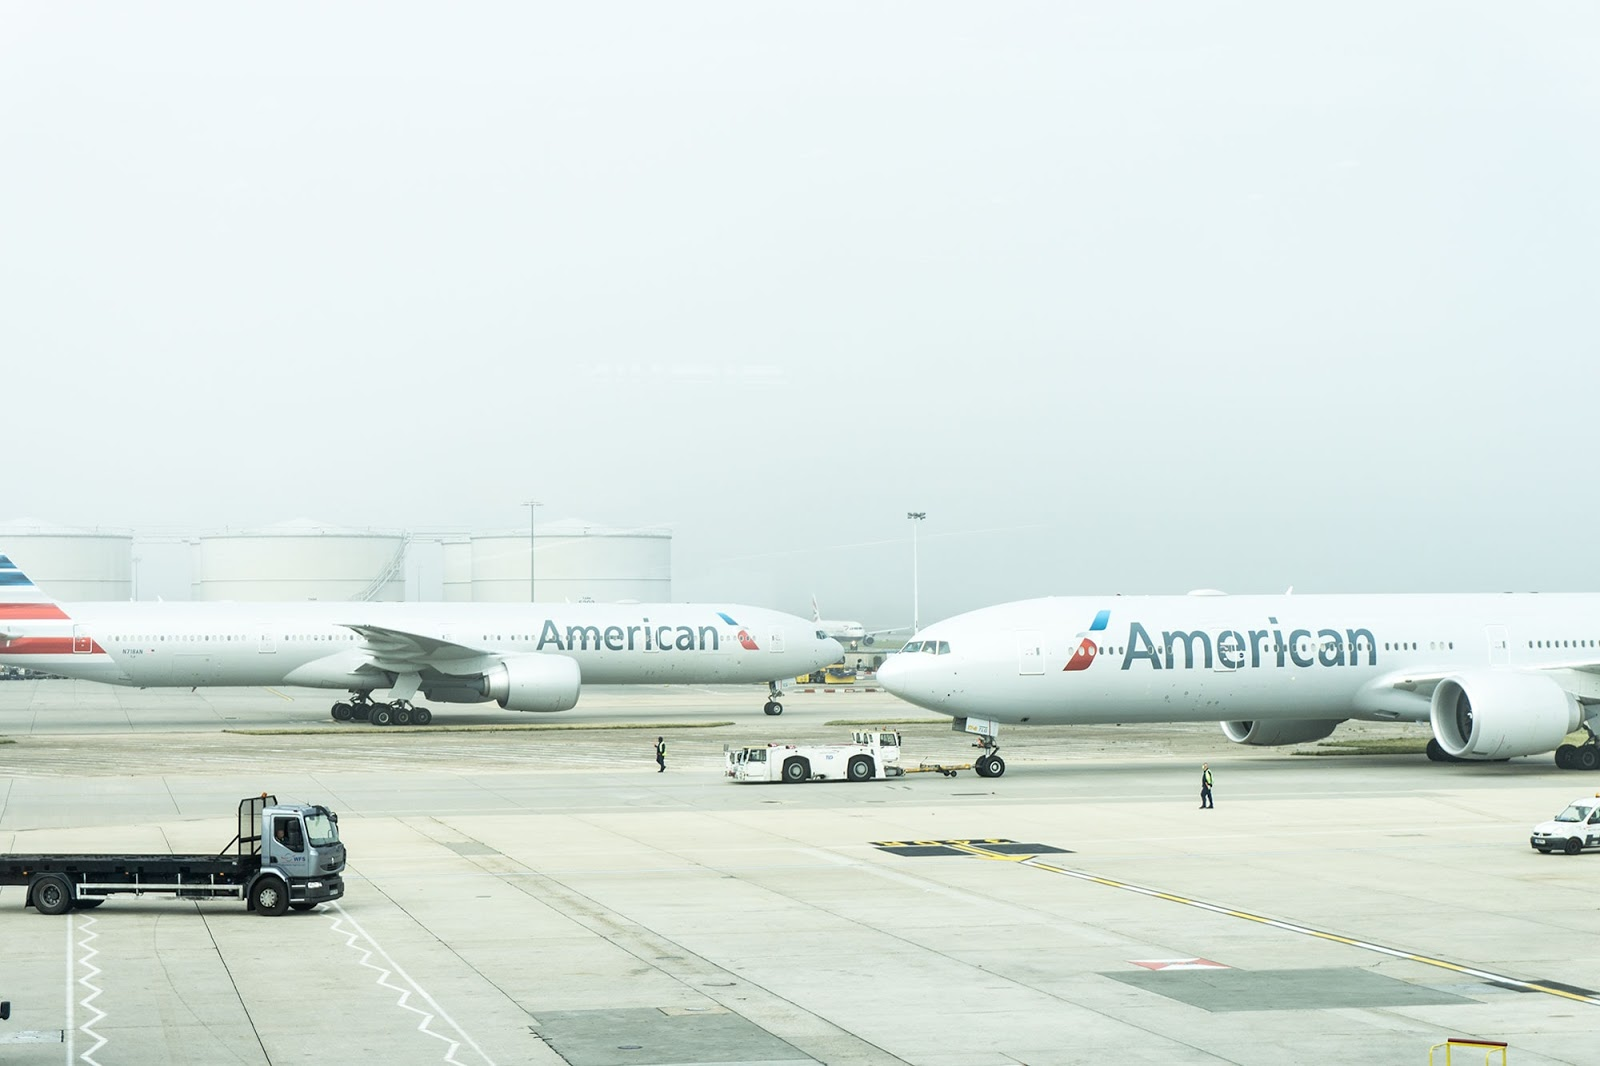 Two American airlines planes sit at the airport landing strip